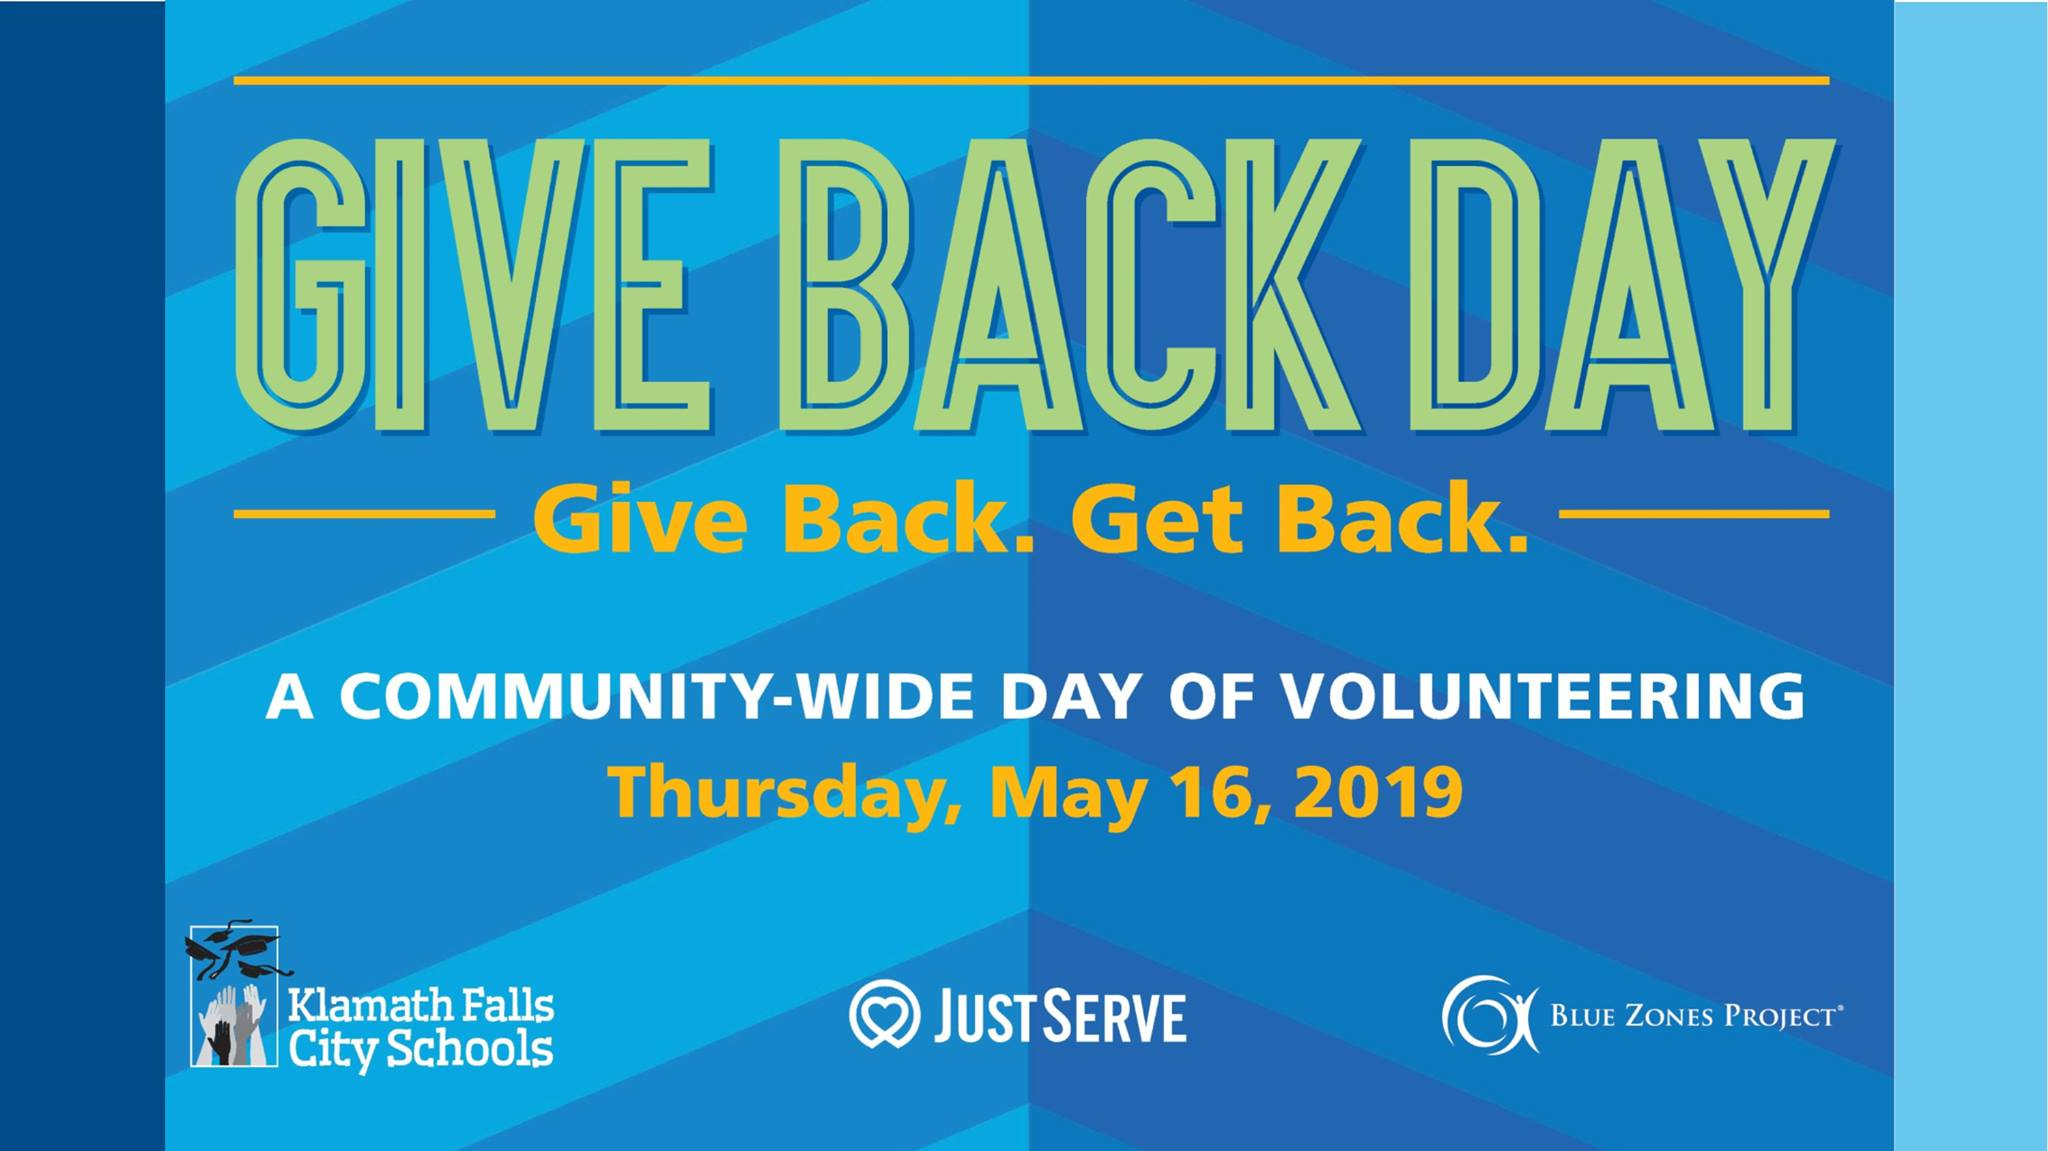 Give Back Day With Blue Zones, Klamath Falls City s, and ... Klamath Falls City Street Map on chico city street map, provo city street map, arcata city street map, coos bay oregon street map, neosho city street map, richmond city street map, aurora city street map, asheville city street map, bozeman city street map, peoria city street map, san luis obispo city street map, flagstaff city street map, santa cruz city street map, prescott city street map, springfield street map, wenatchee city street map, elmira city street map, oroville city street map, tacoma city street map, ottumwa city street map,